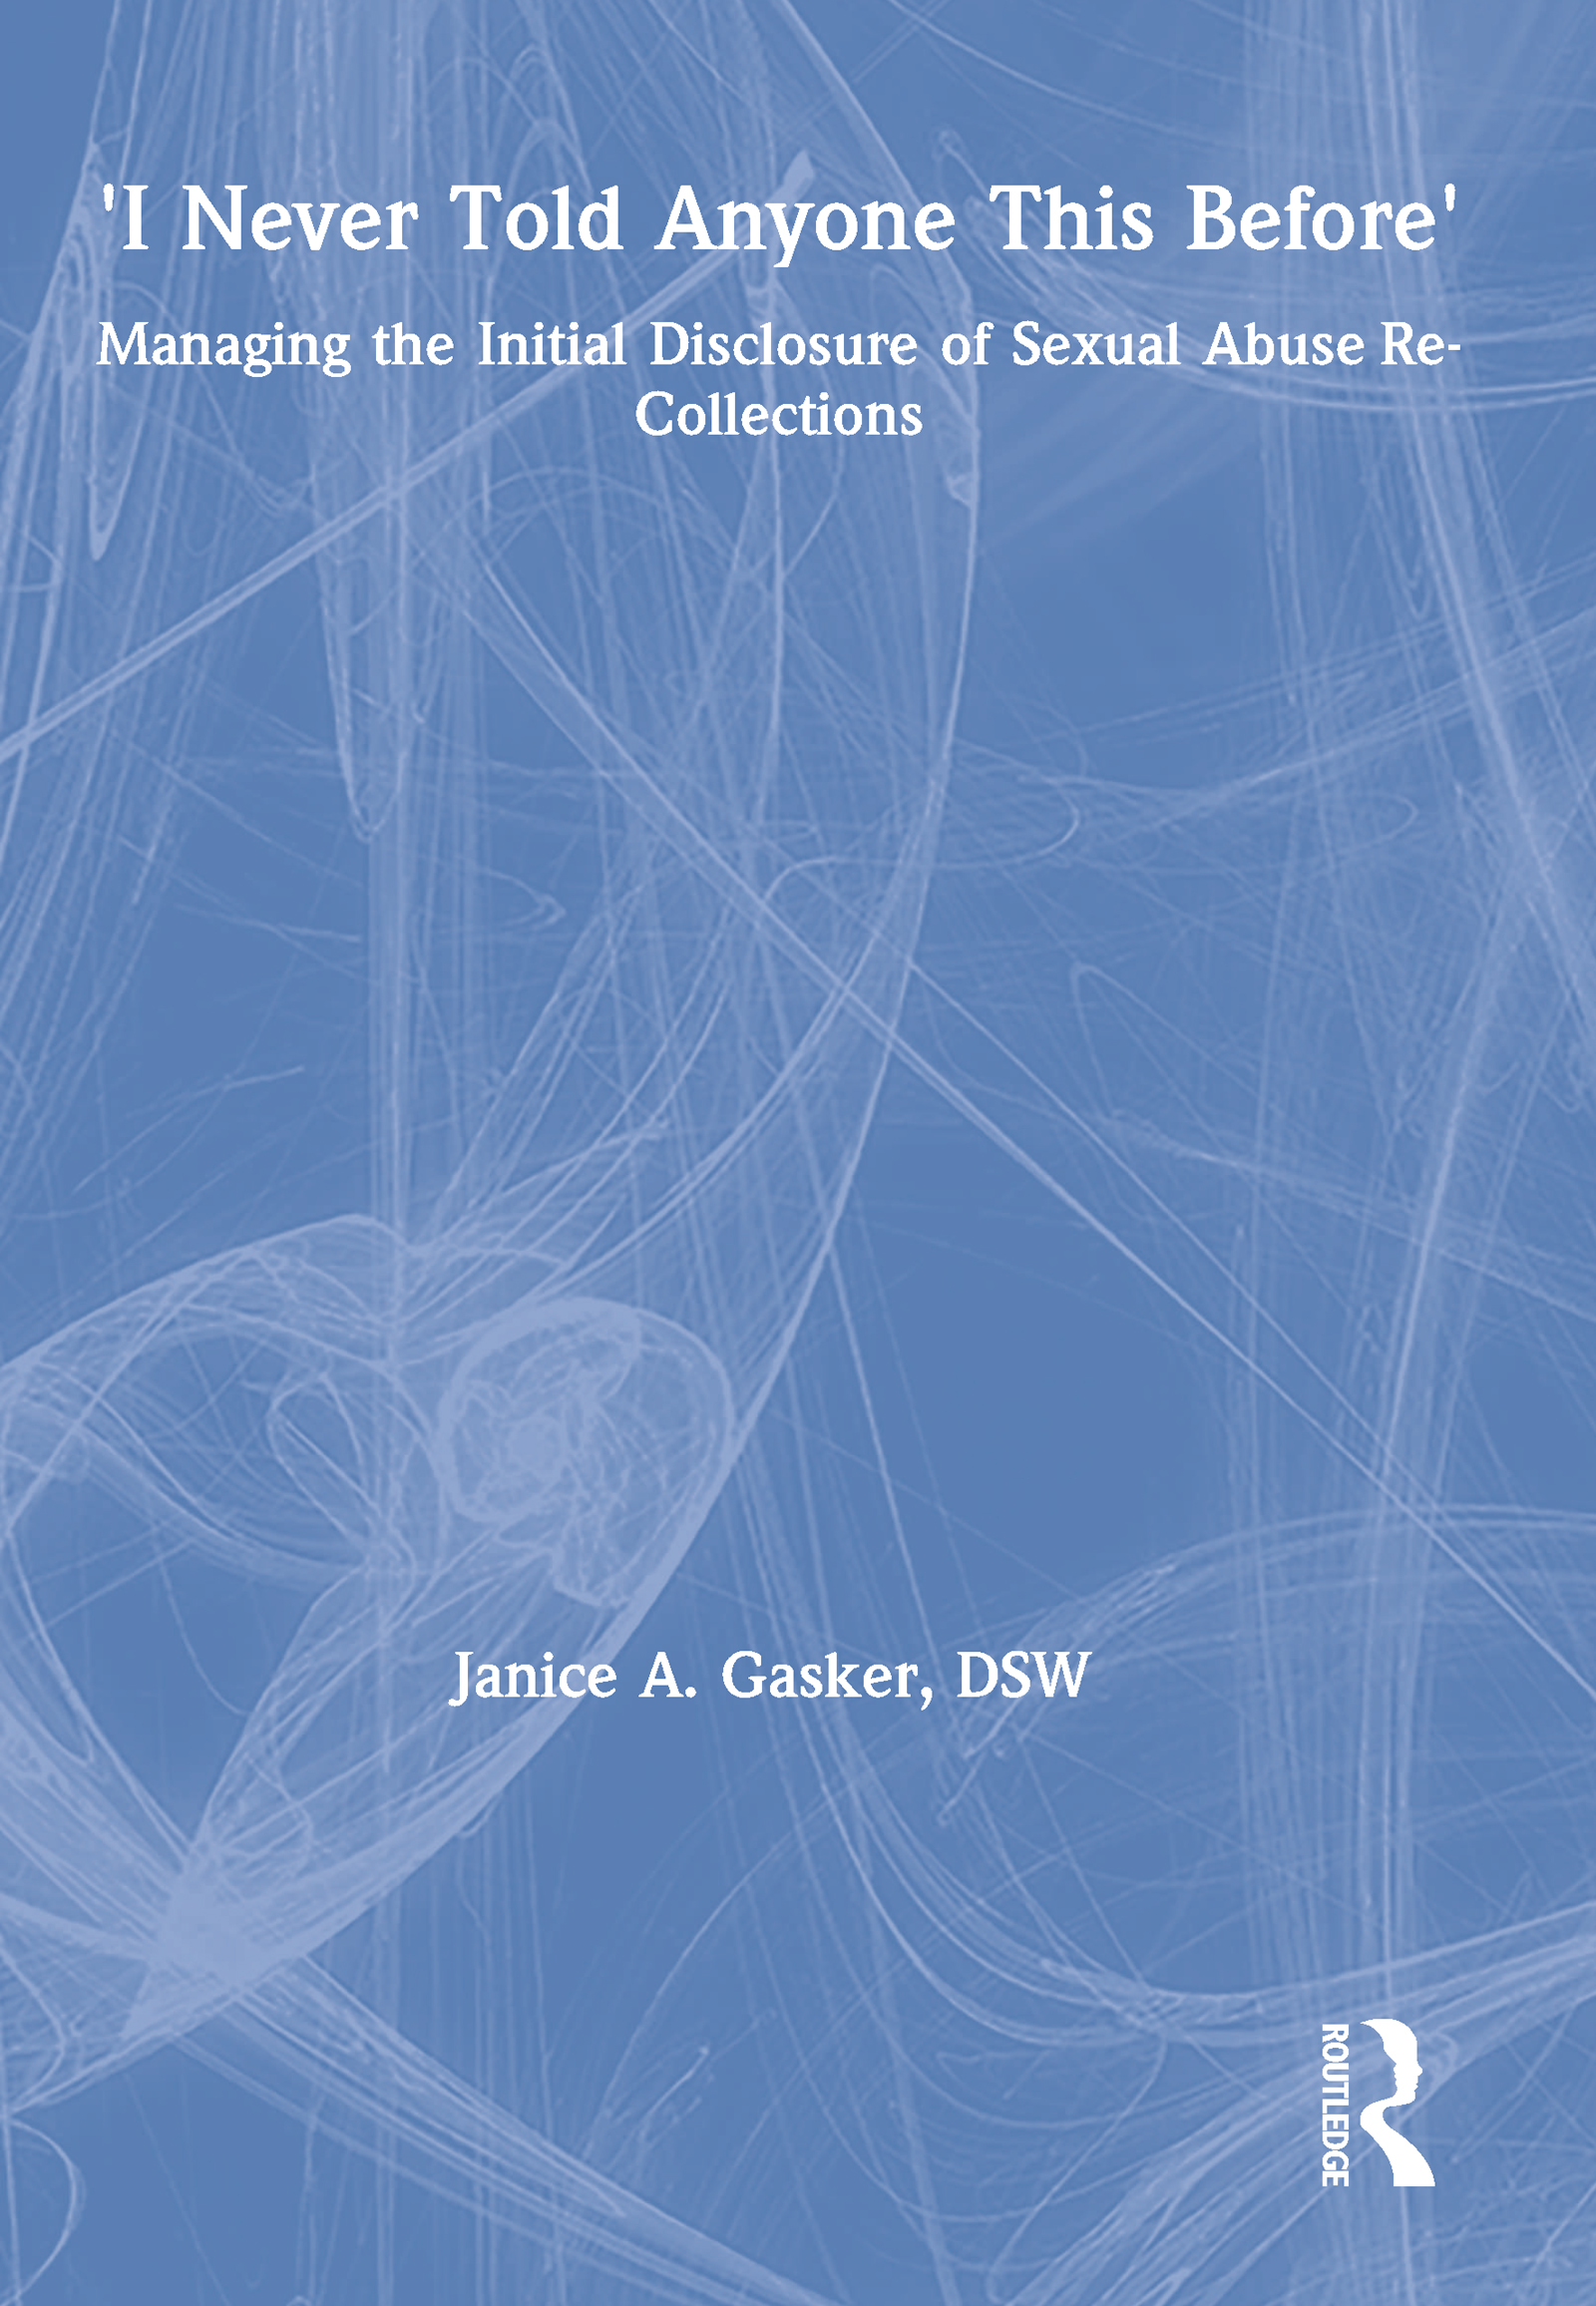 I Never Told Anyone This Before: Managing the Initial Disclosure of Sexual Abuse Re-Collections book cover